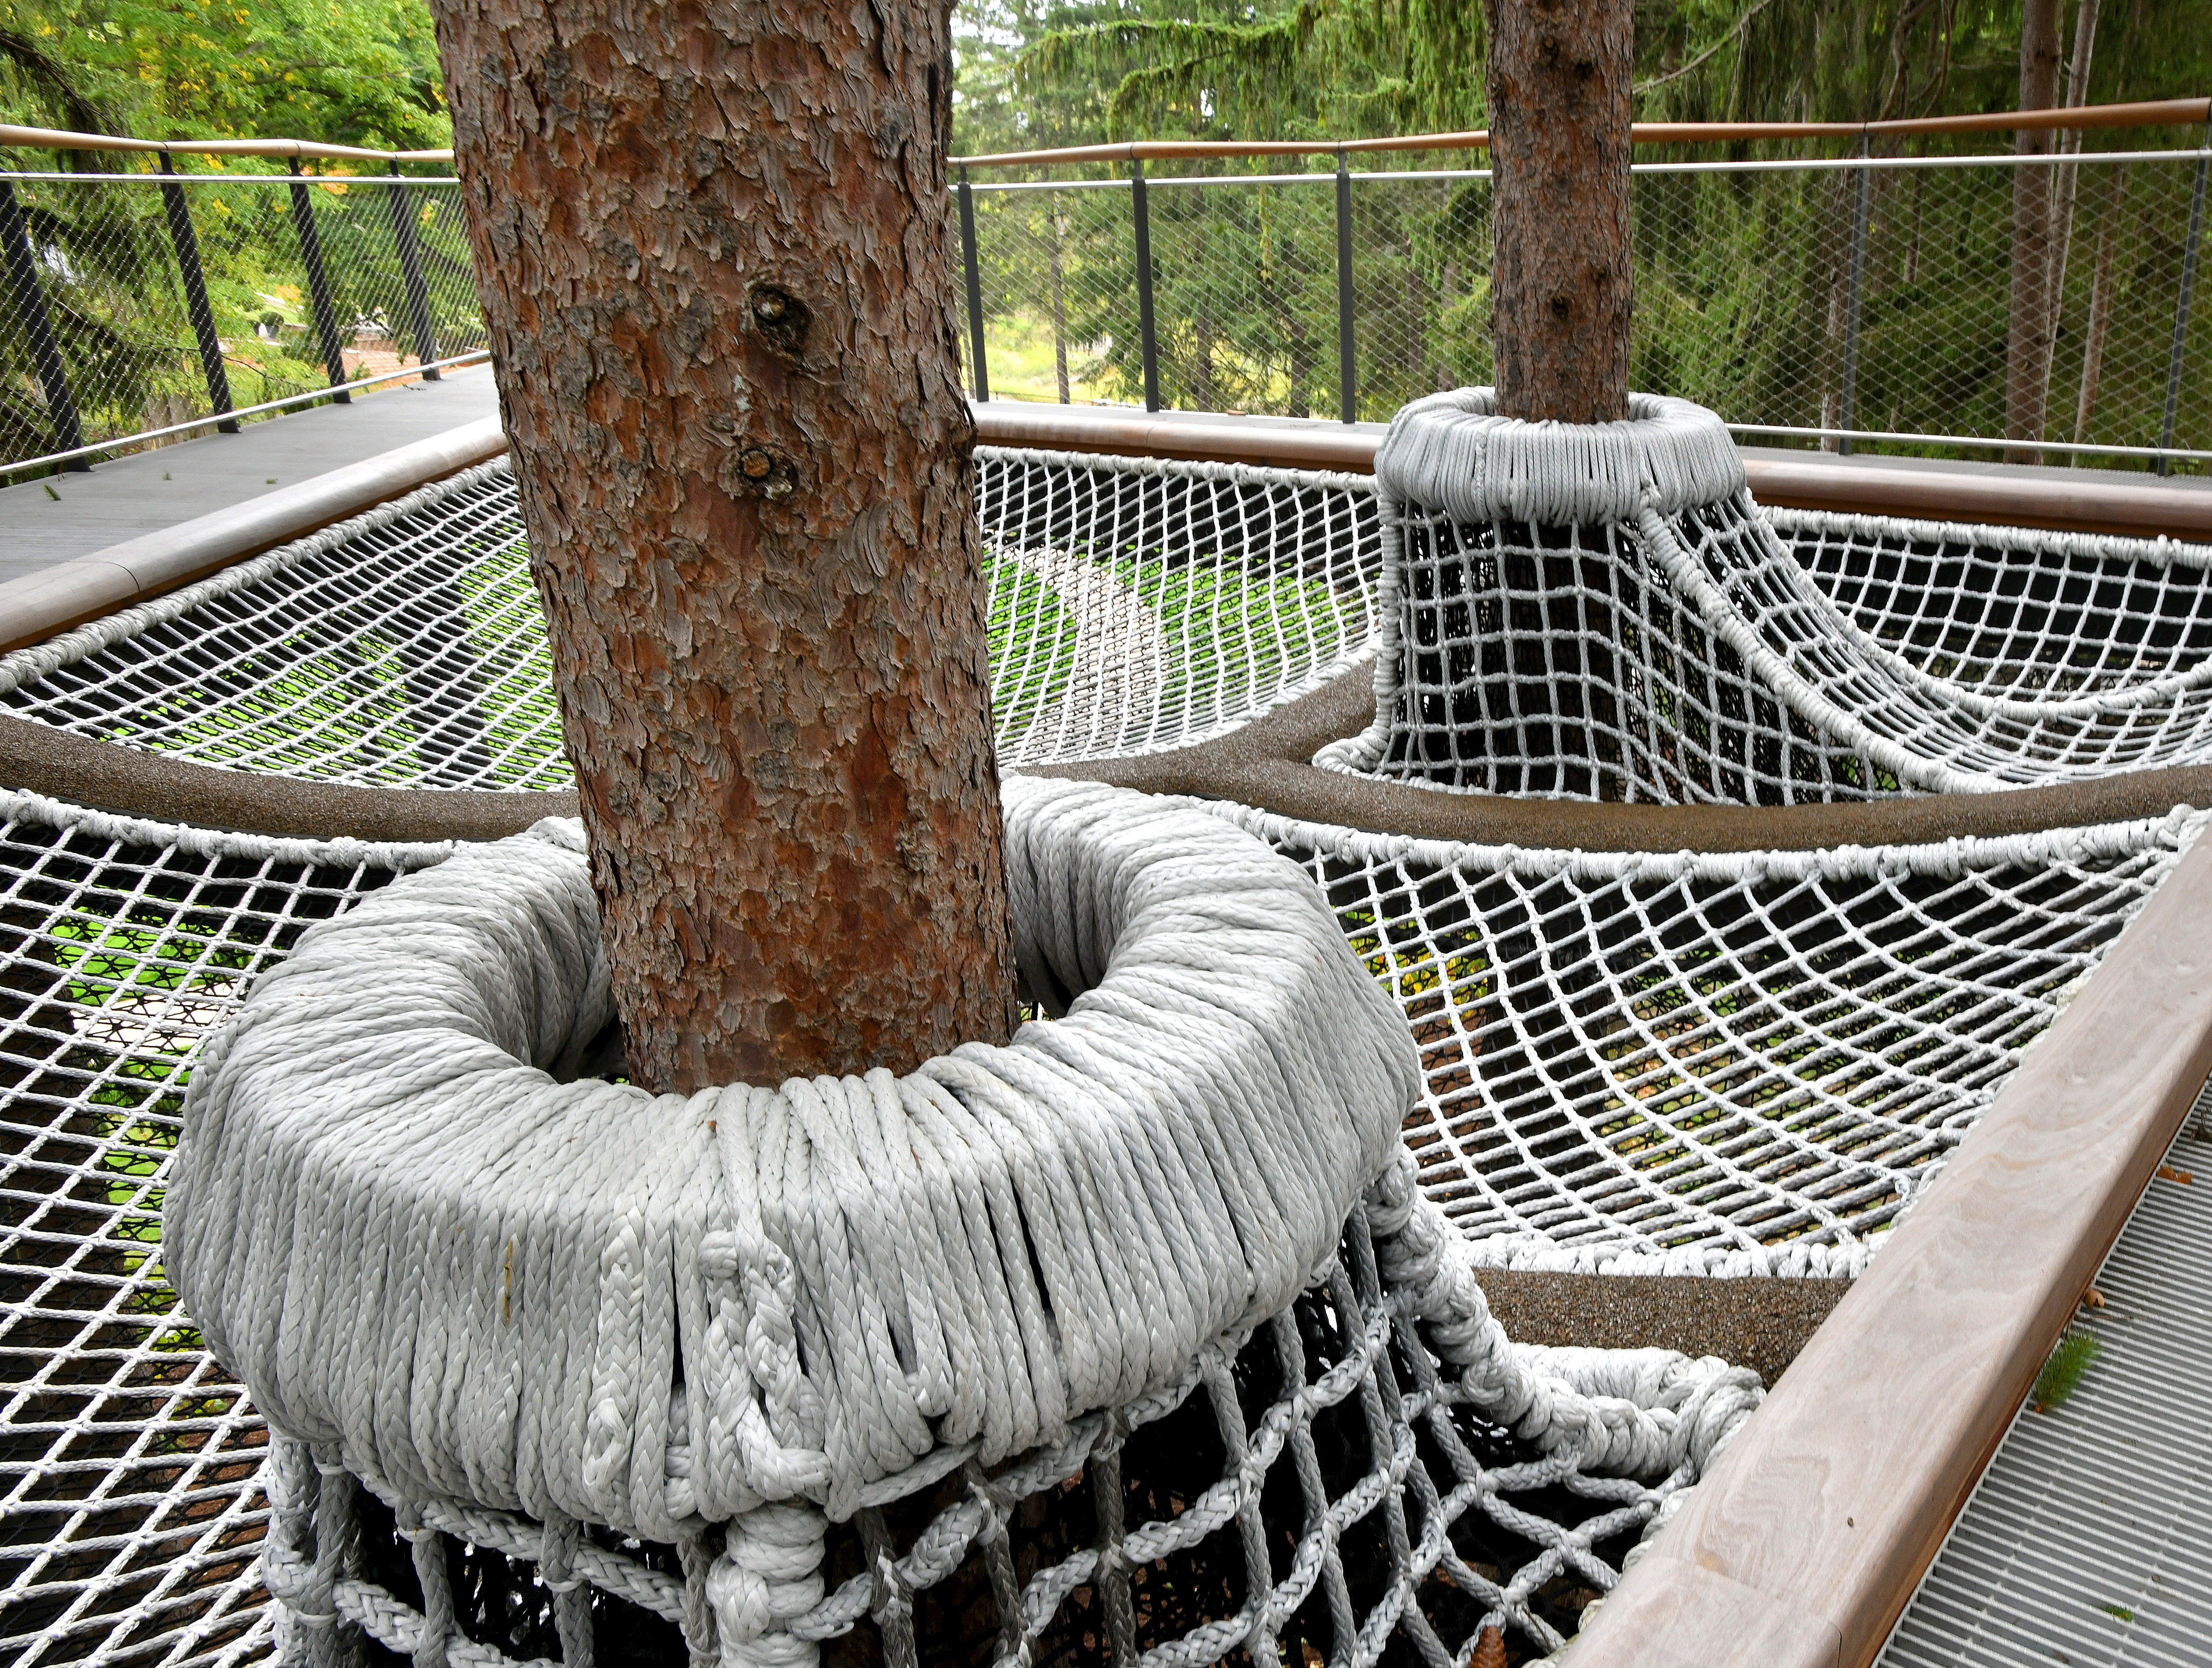 """The """"Spruce Arm"""" includes a rope experience that kids are sure to enjoy, with Norway Spruce trees growing right through the feature."""